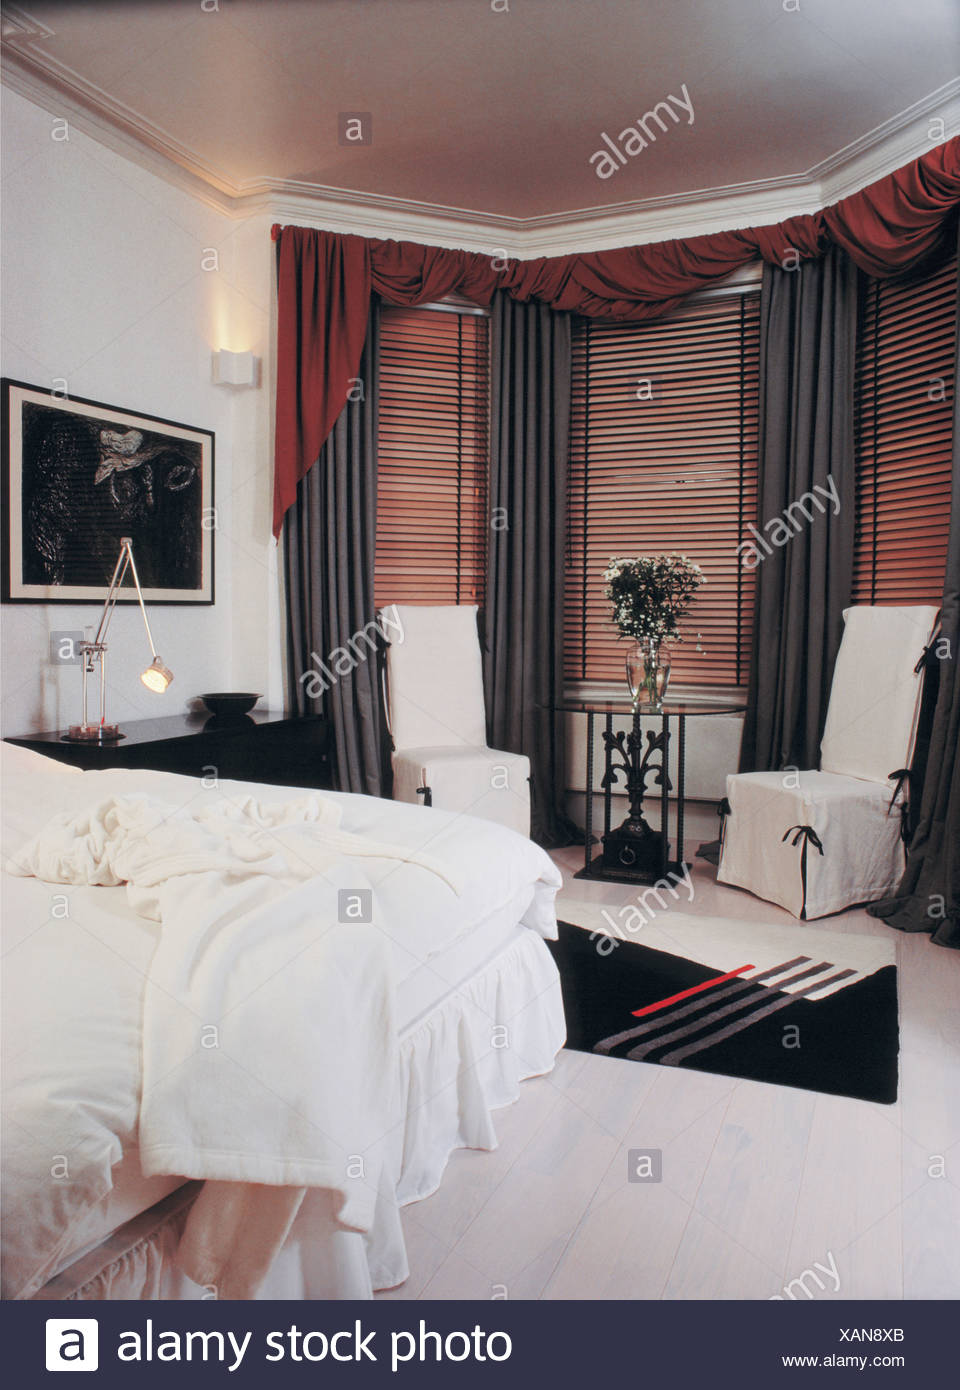 White Loosecovers On Chairs Beside Bay Window With Wooden Blinds And